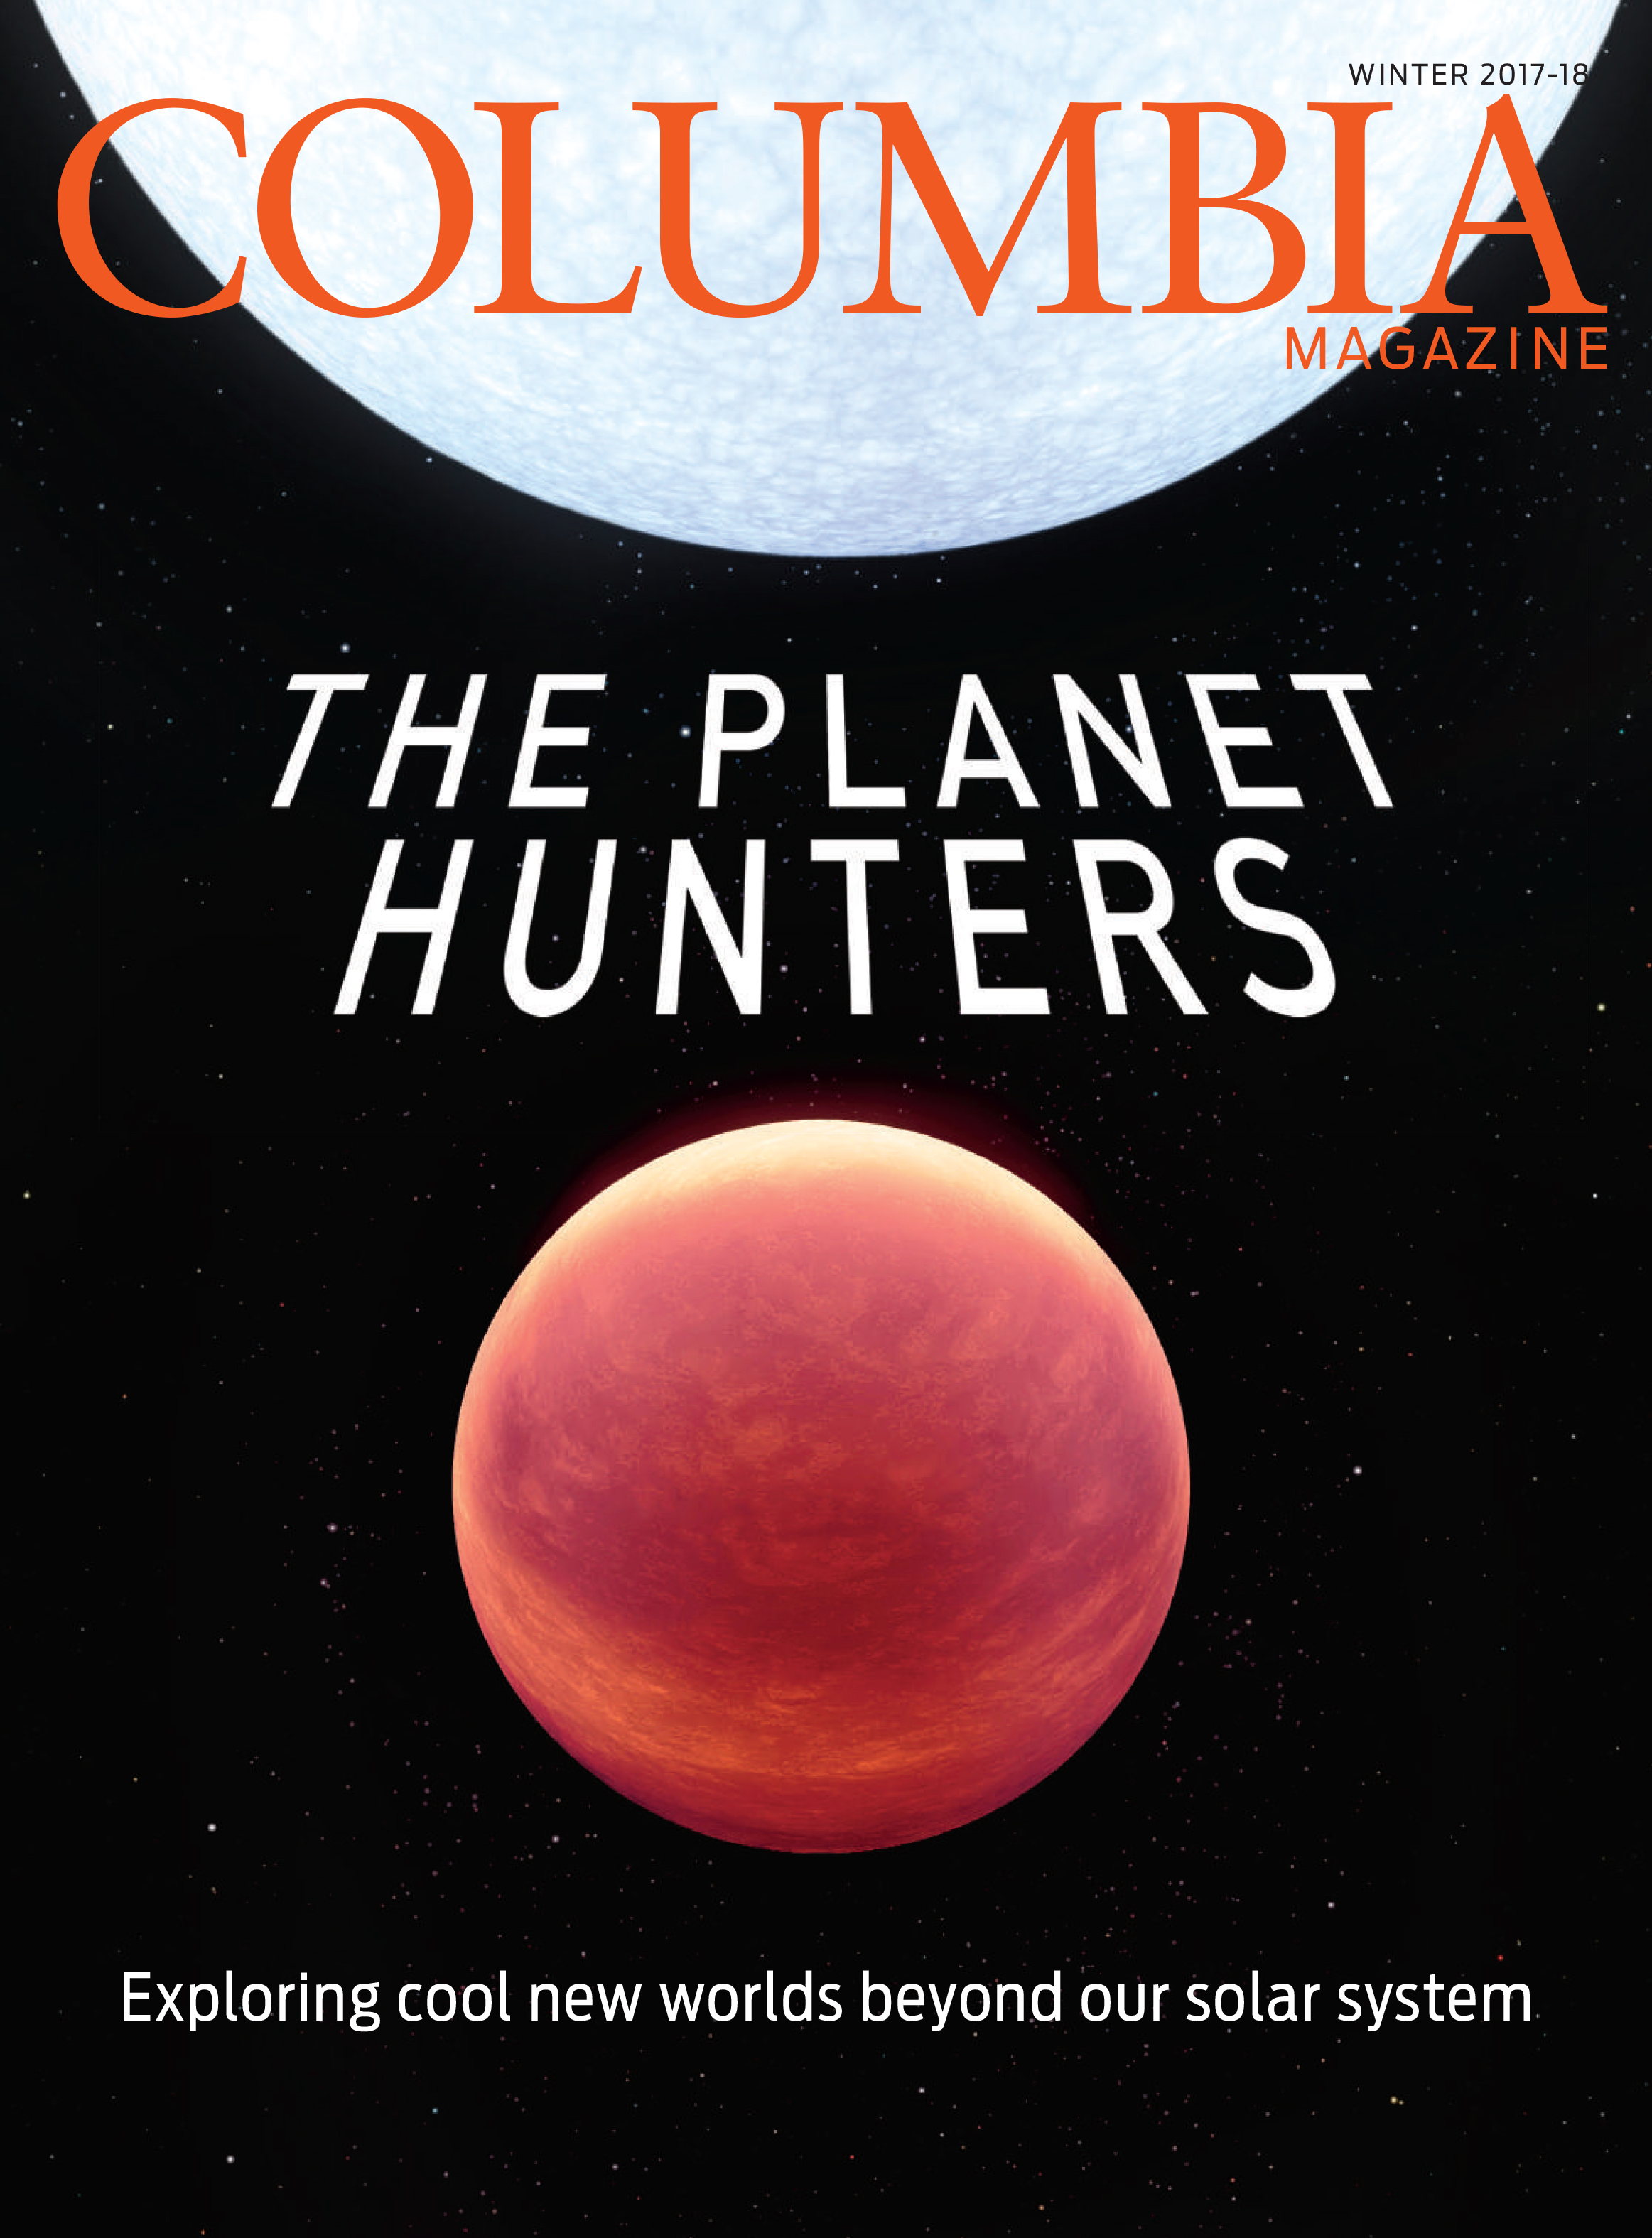 Cover of winter 2017-18 issue of Columbia Magazine